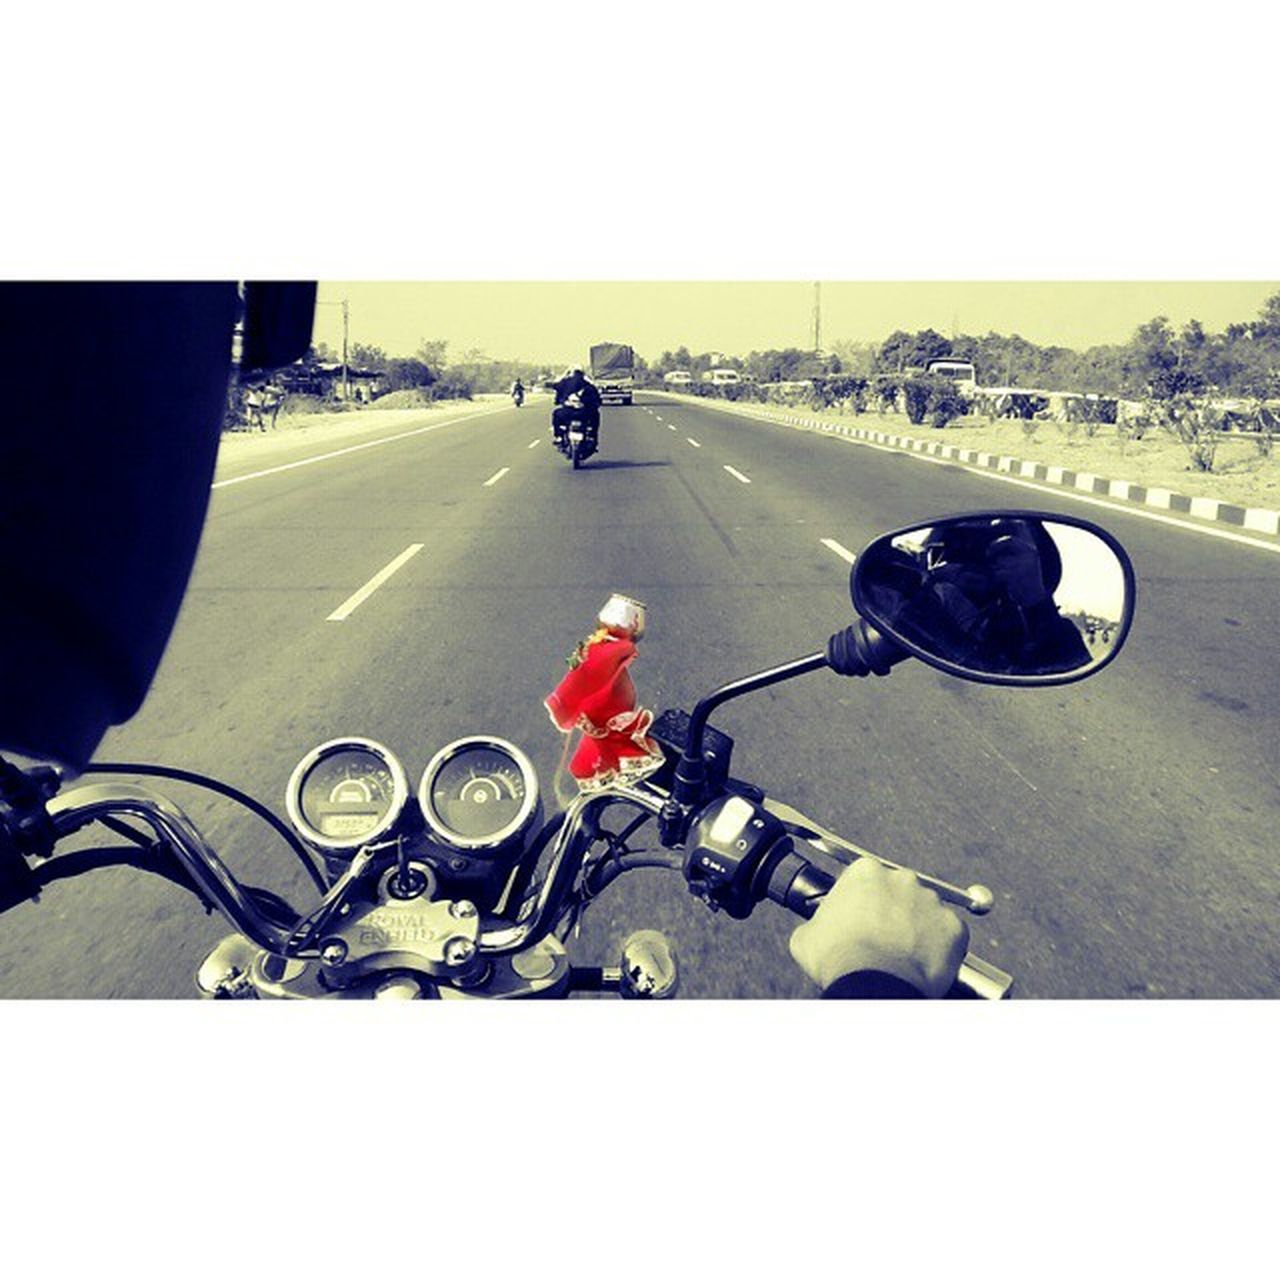 motorcycle, road, transportation, land vehicle, mode of transport, crash helmet, day, riding, helmet, sports race, outdoors, one person, full length, motorsport, biker, one man only, people, adult, sky, only men